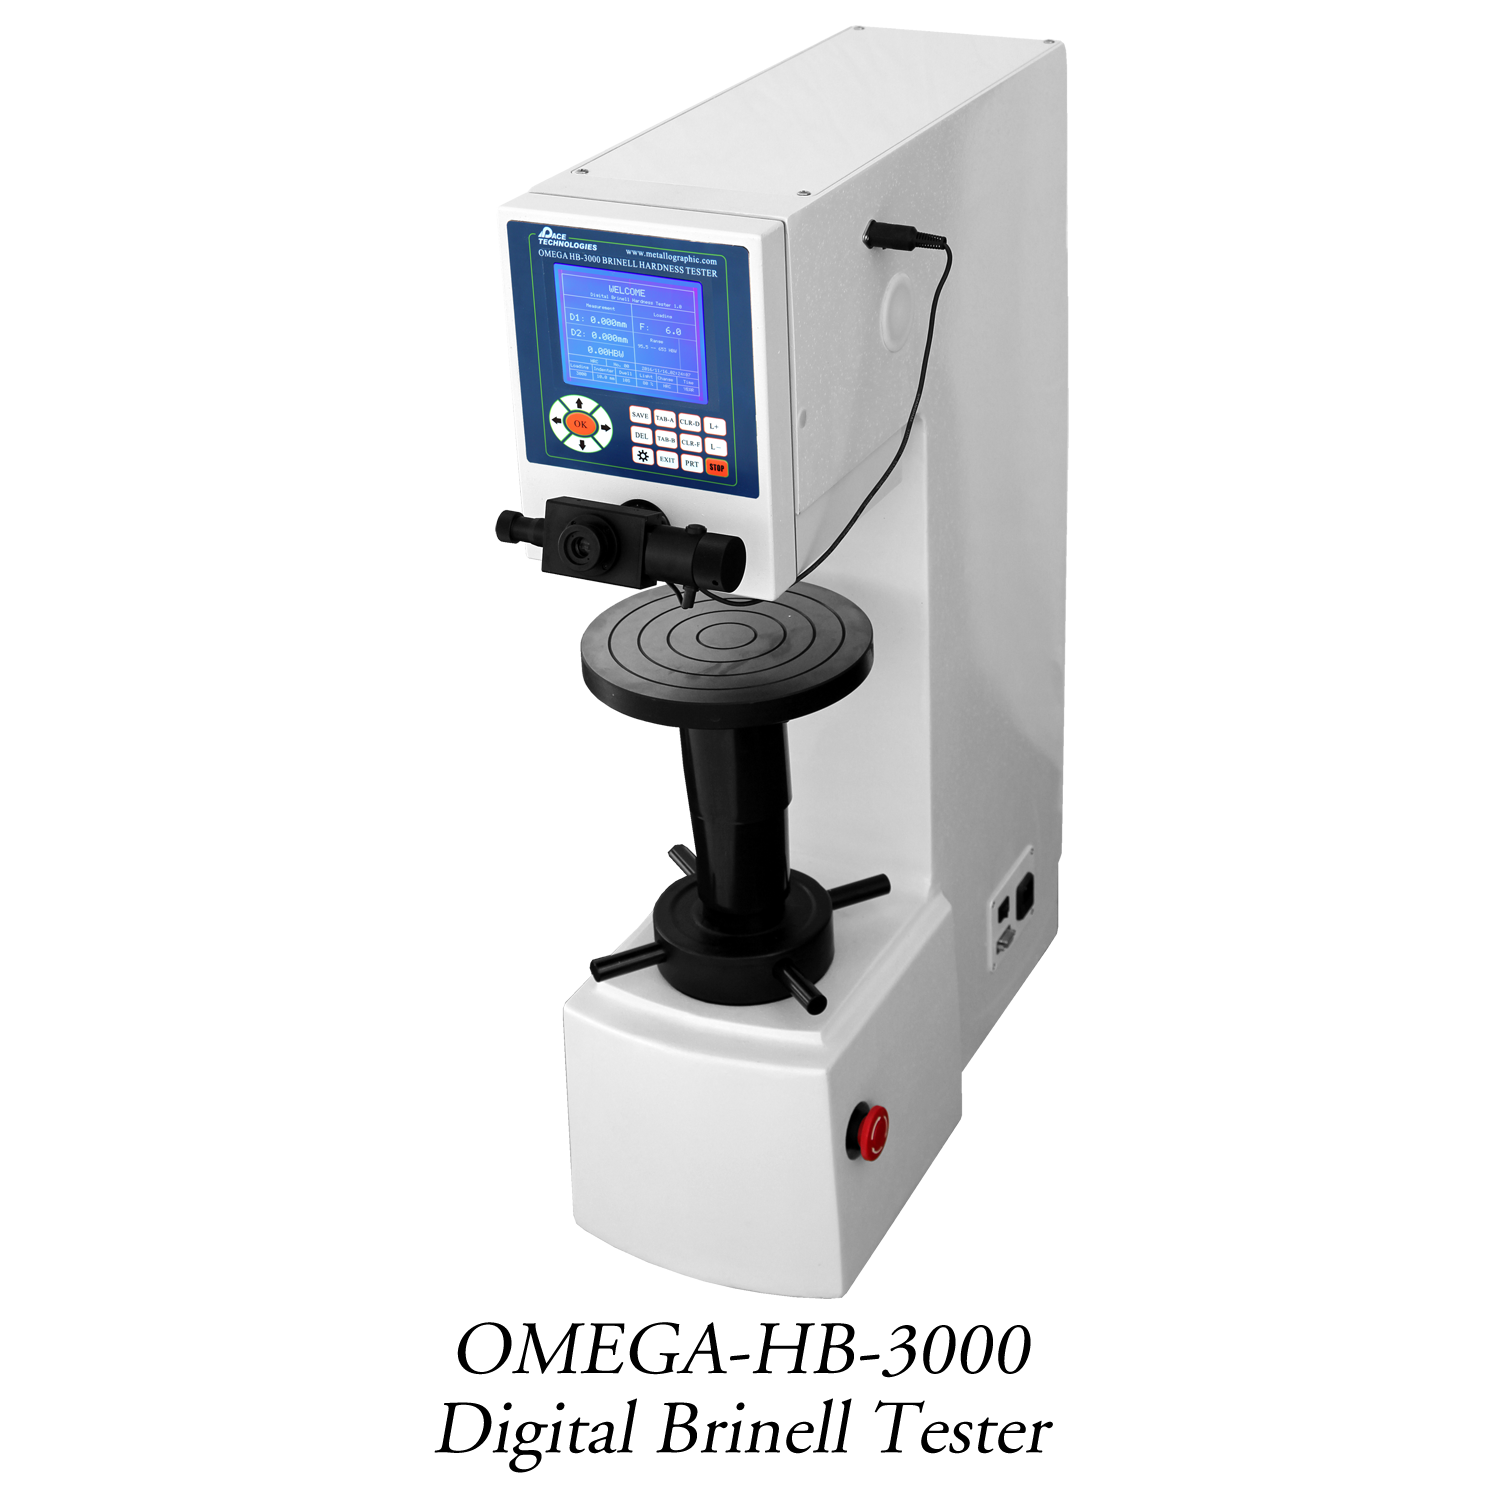 Metallographic OMEGA-DIGI Digital Brinell Hardness Tester